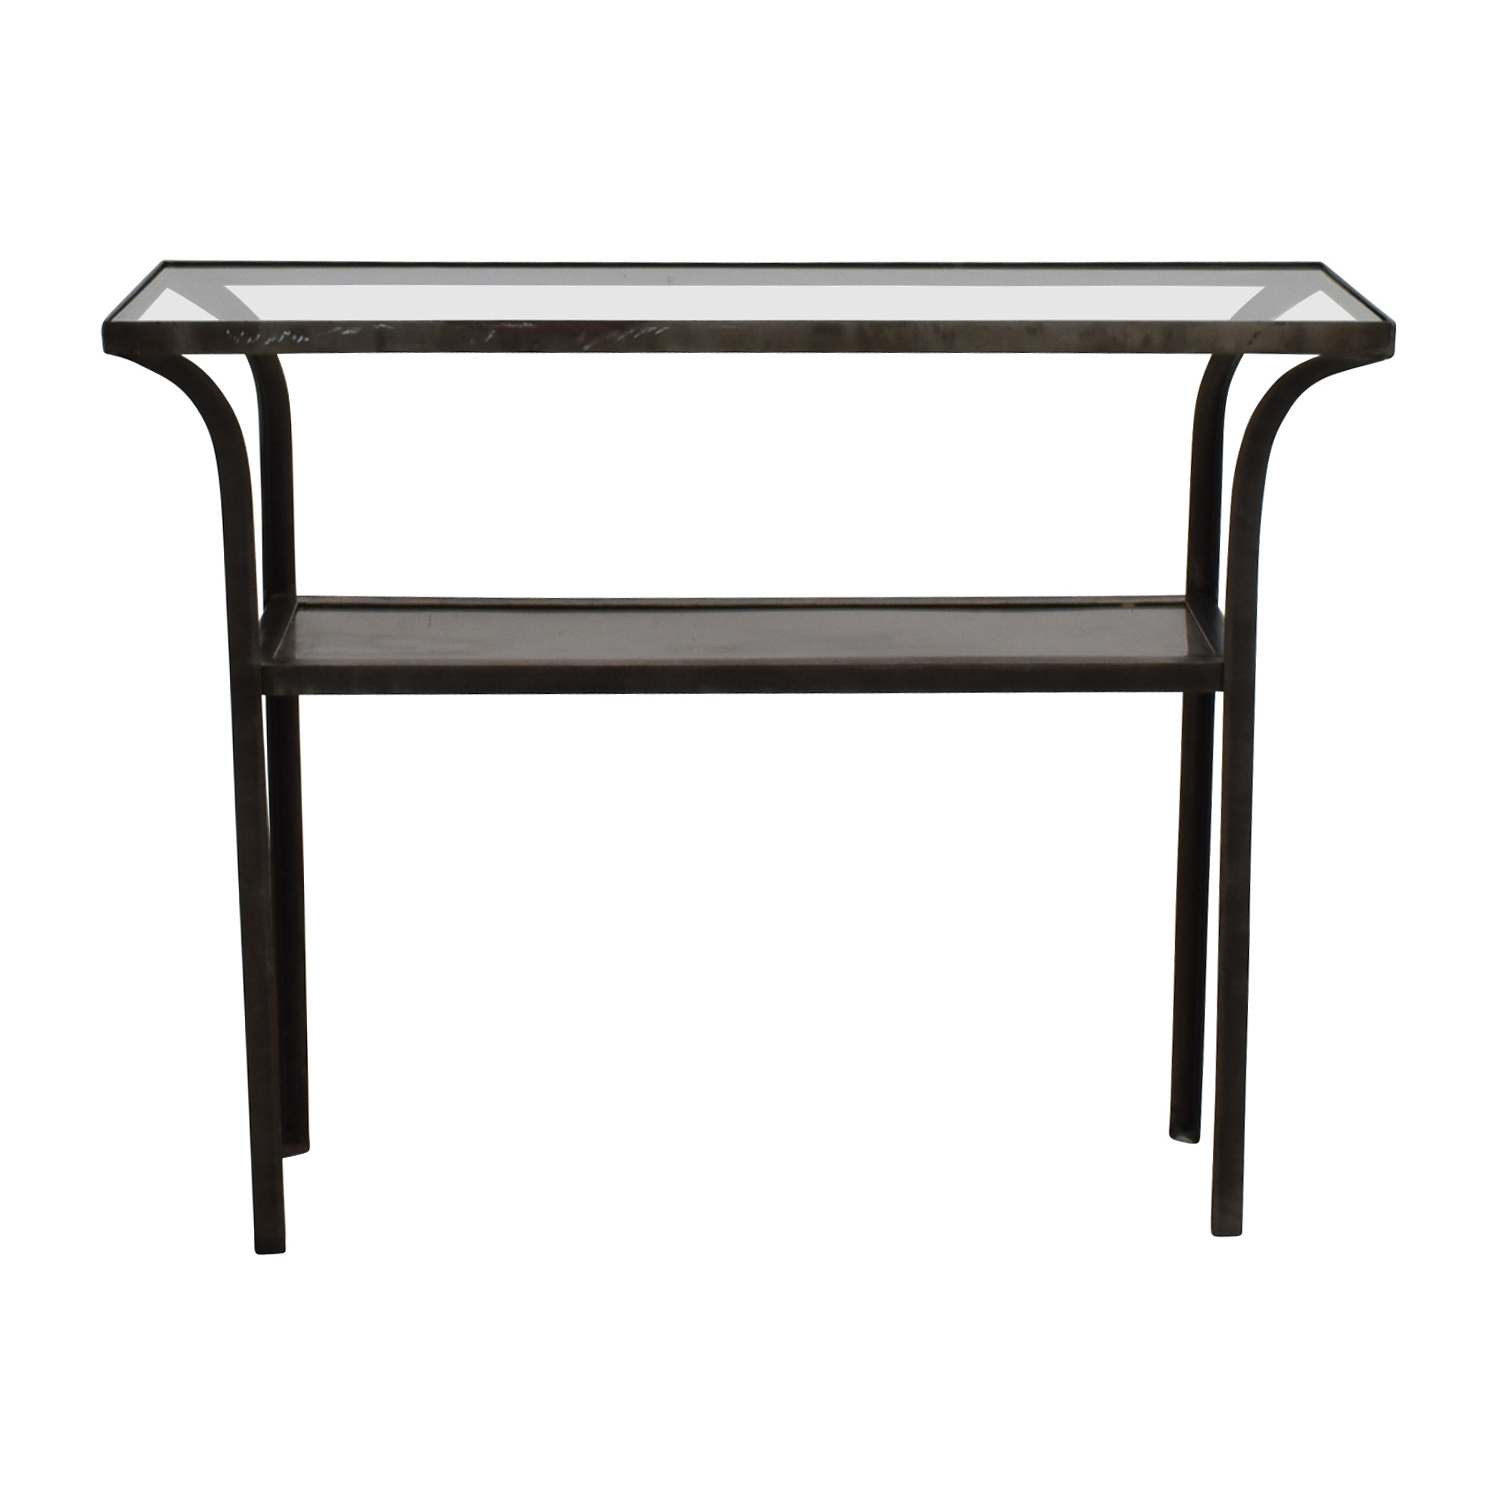 shop Crate & Barrel Metal and Glass Console Table Crate & Barrel End Tables